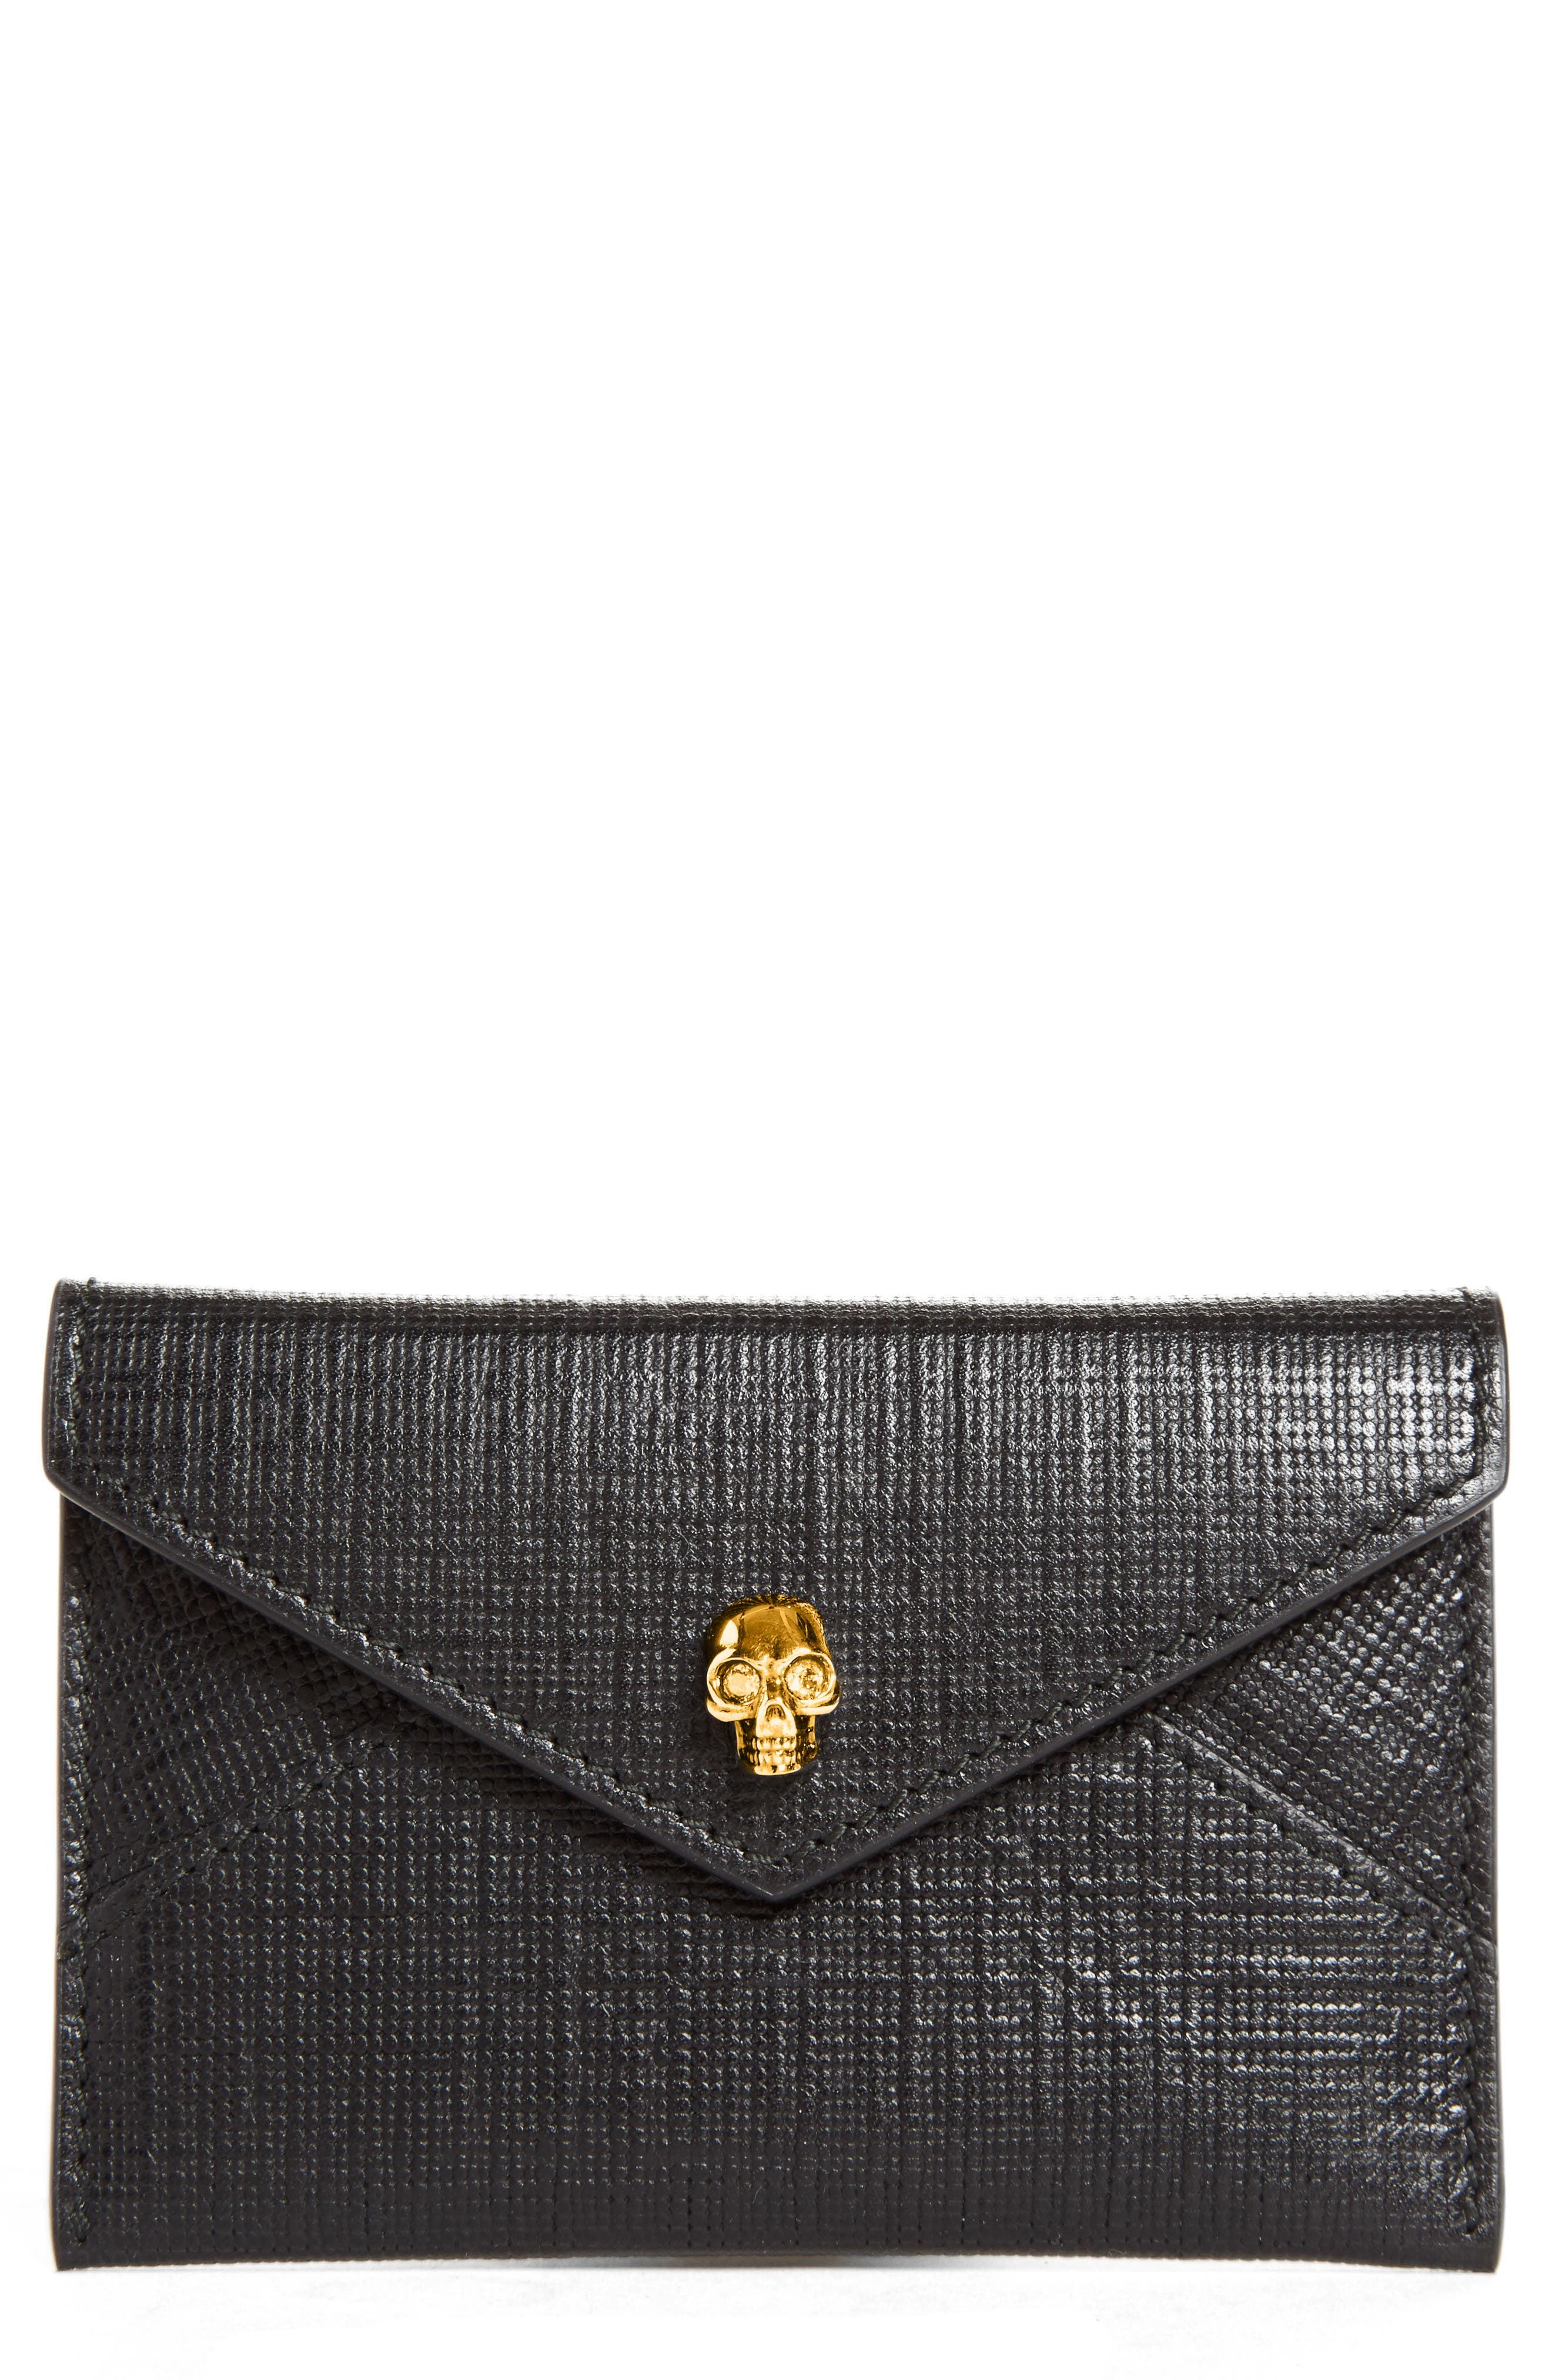 Main Image - Alexander McQueen Embossed Leather Envelope Card Case